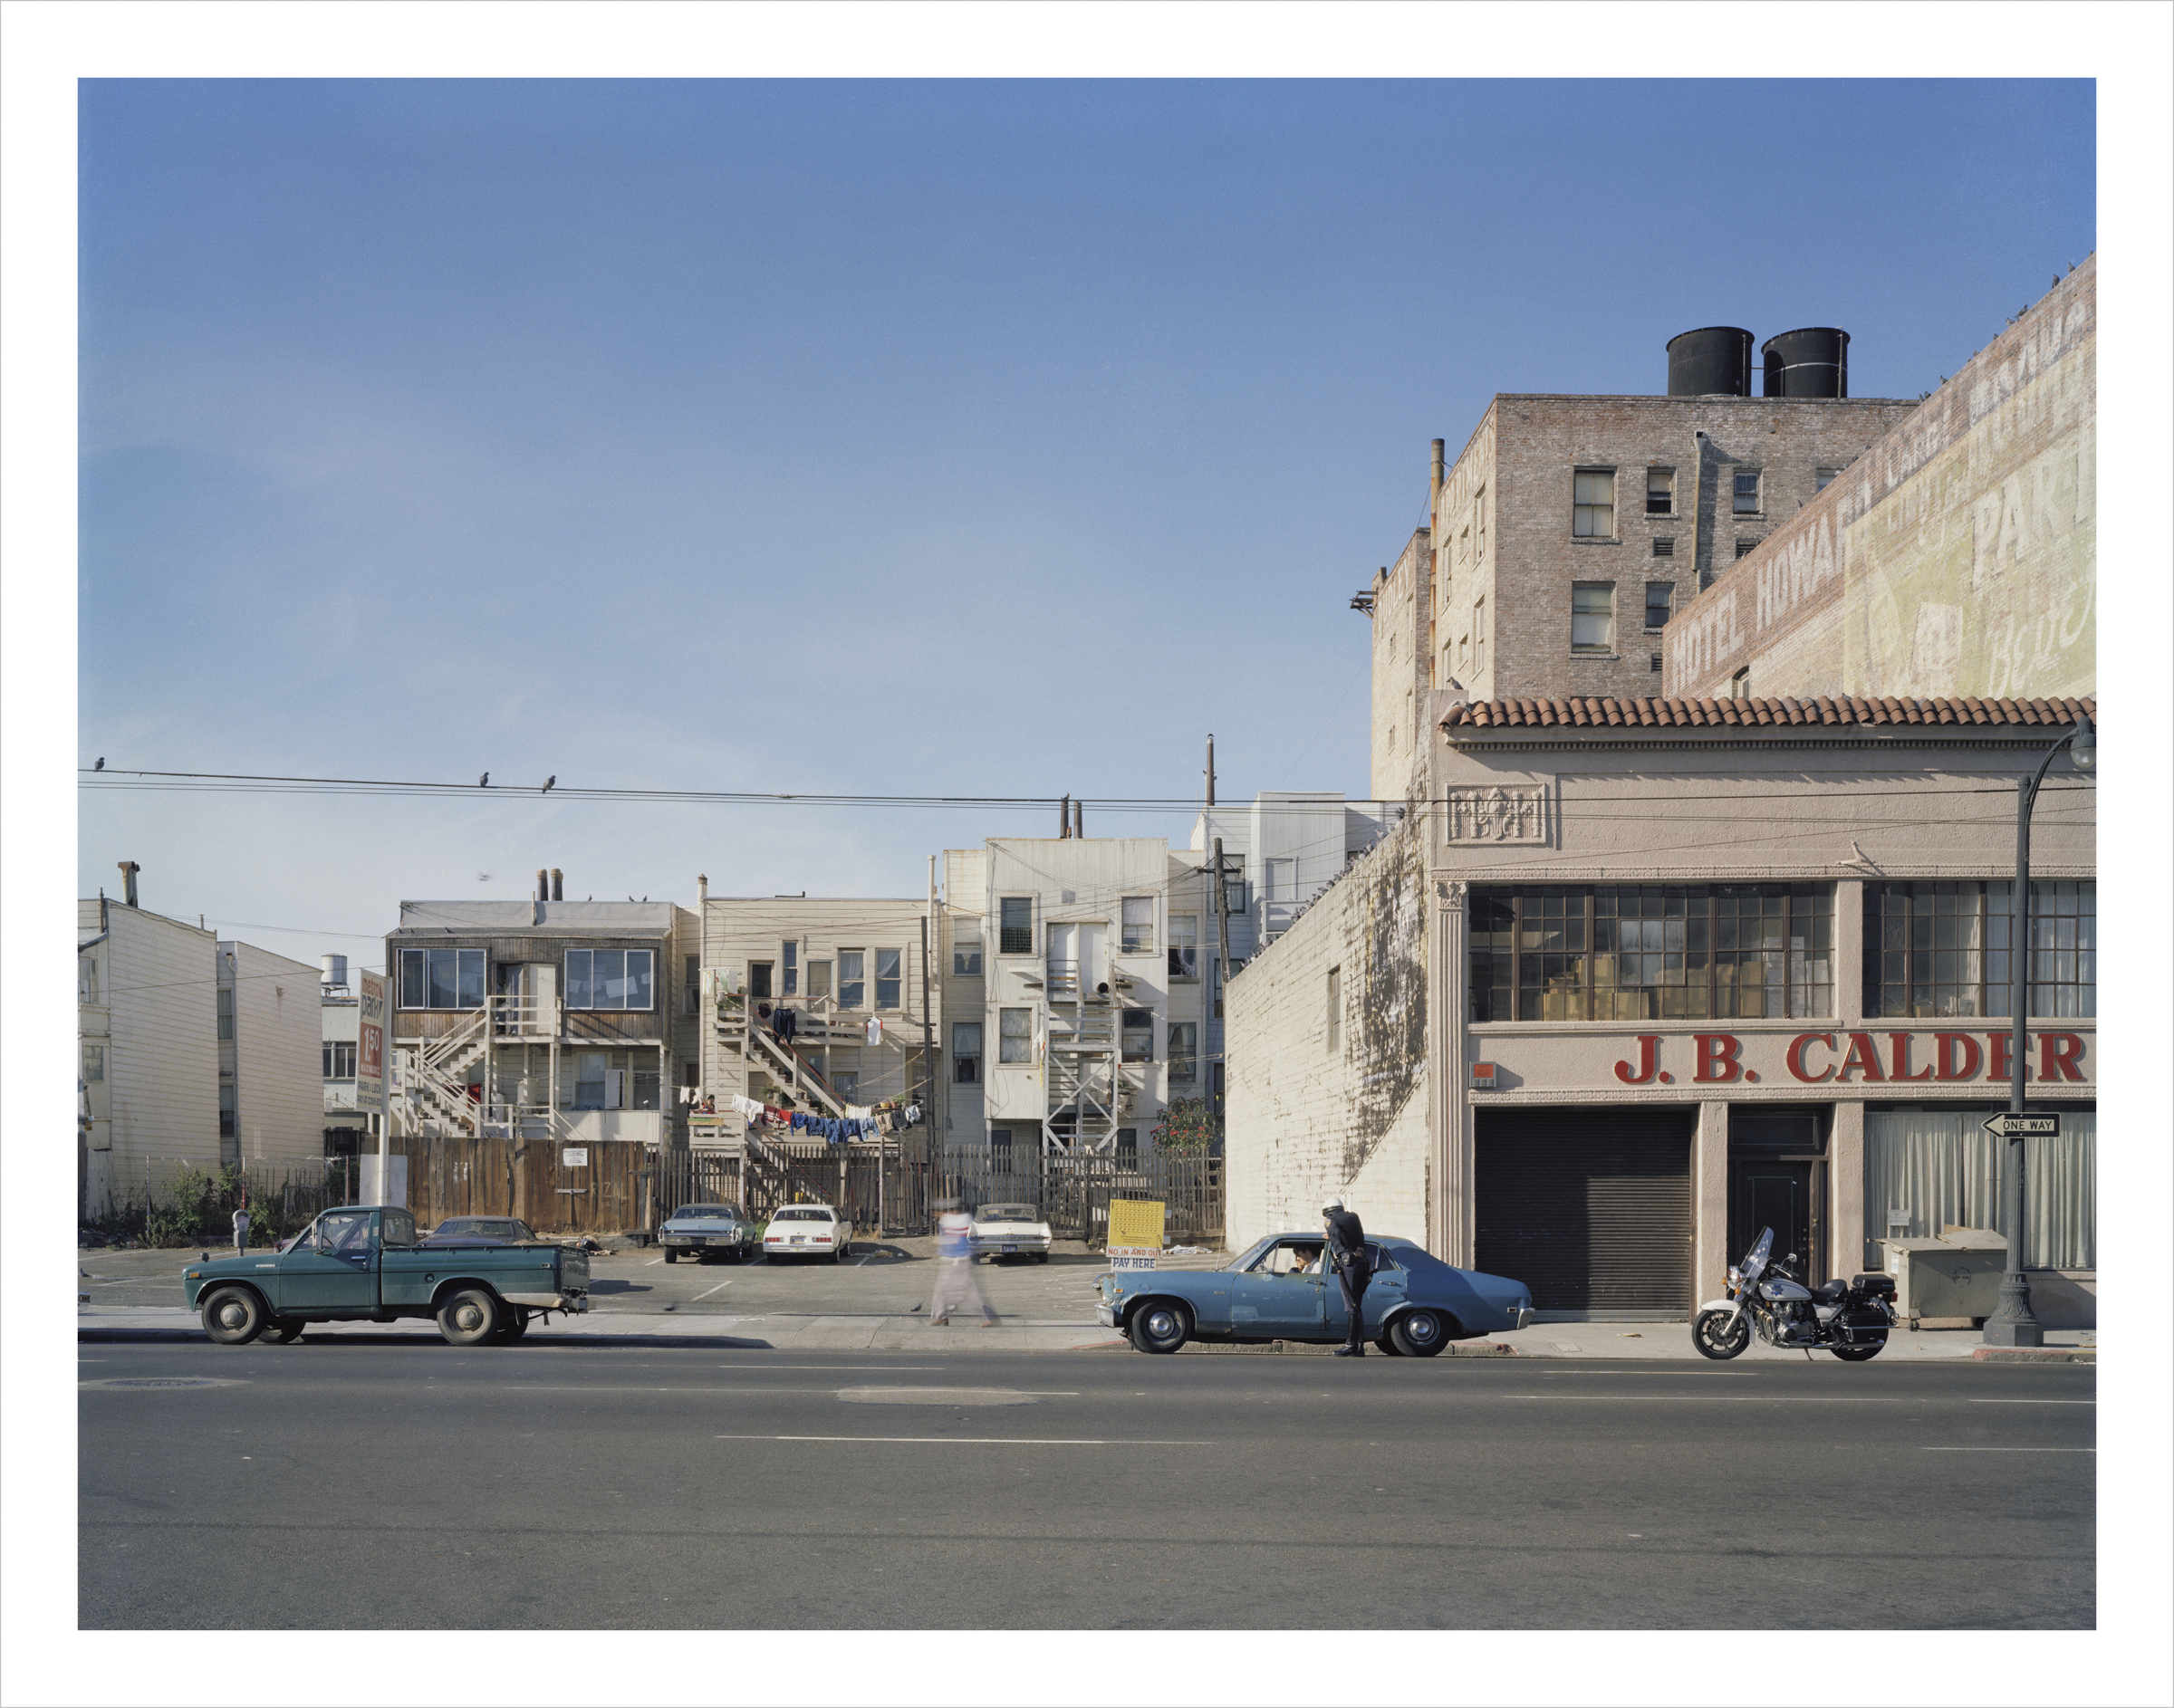 Policeman writing a ticket, Howard near 6th Street, 1980 Archival Pigment Print, 2016 16 x 20 inches, edition of 5 20 x 24 inches, edition of 2 30 x 40 inches, edition of 2